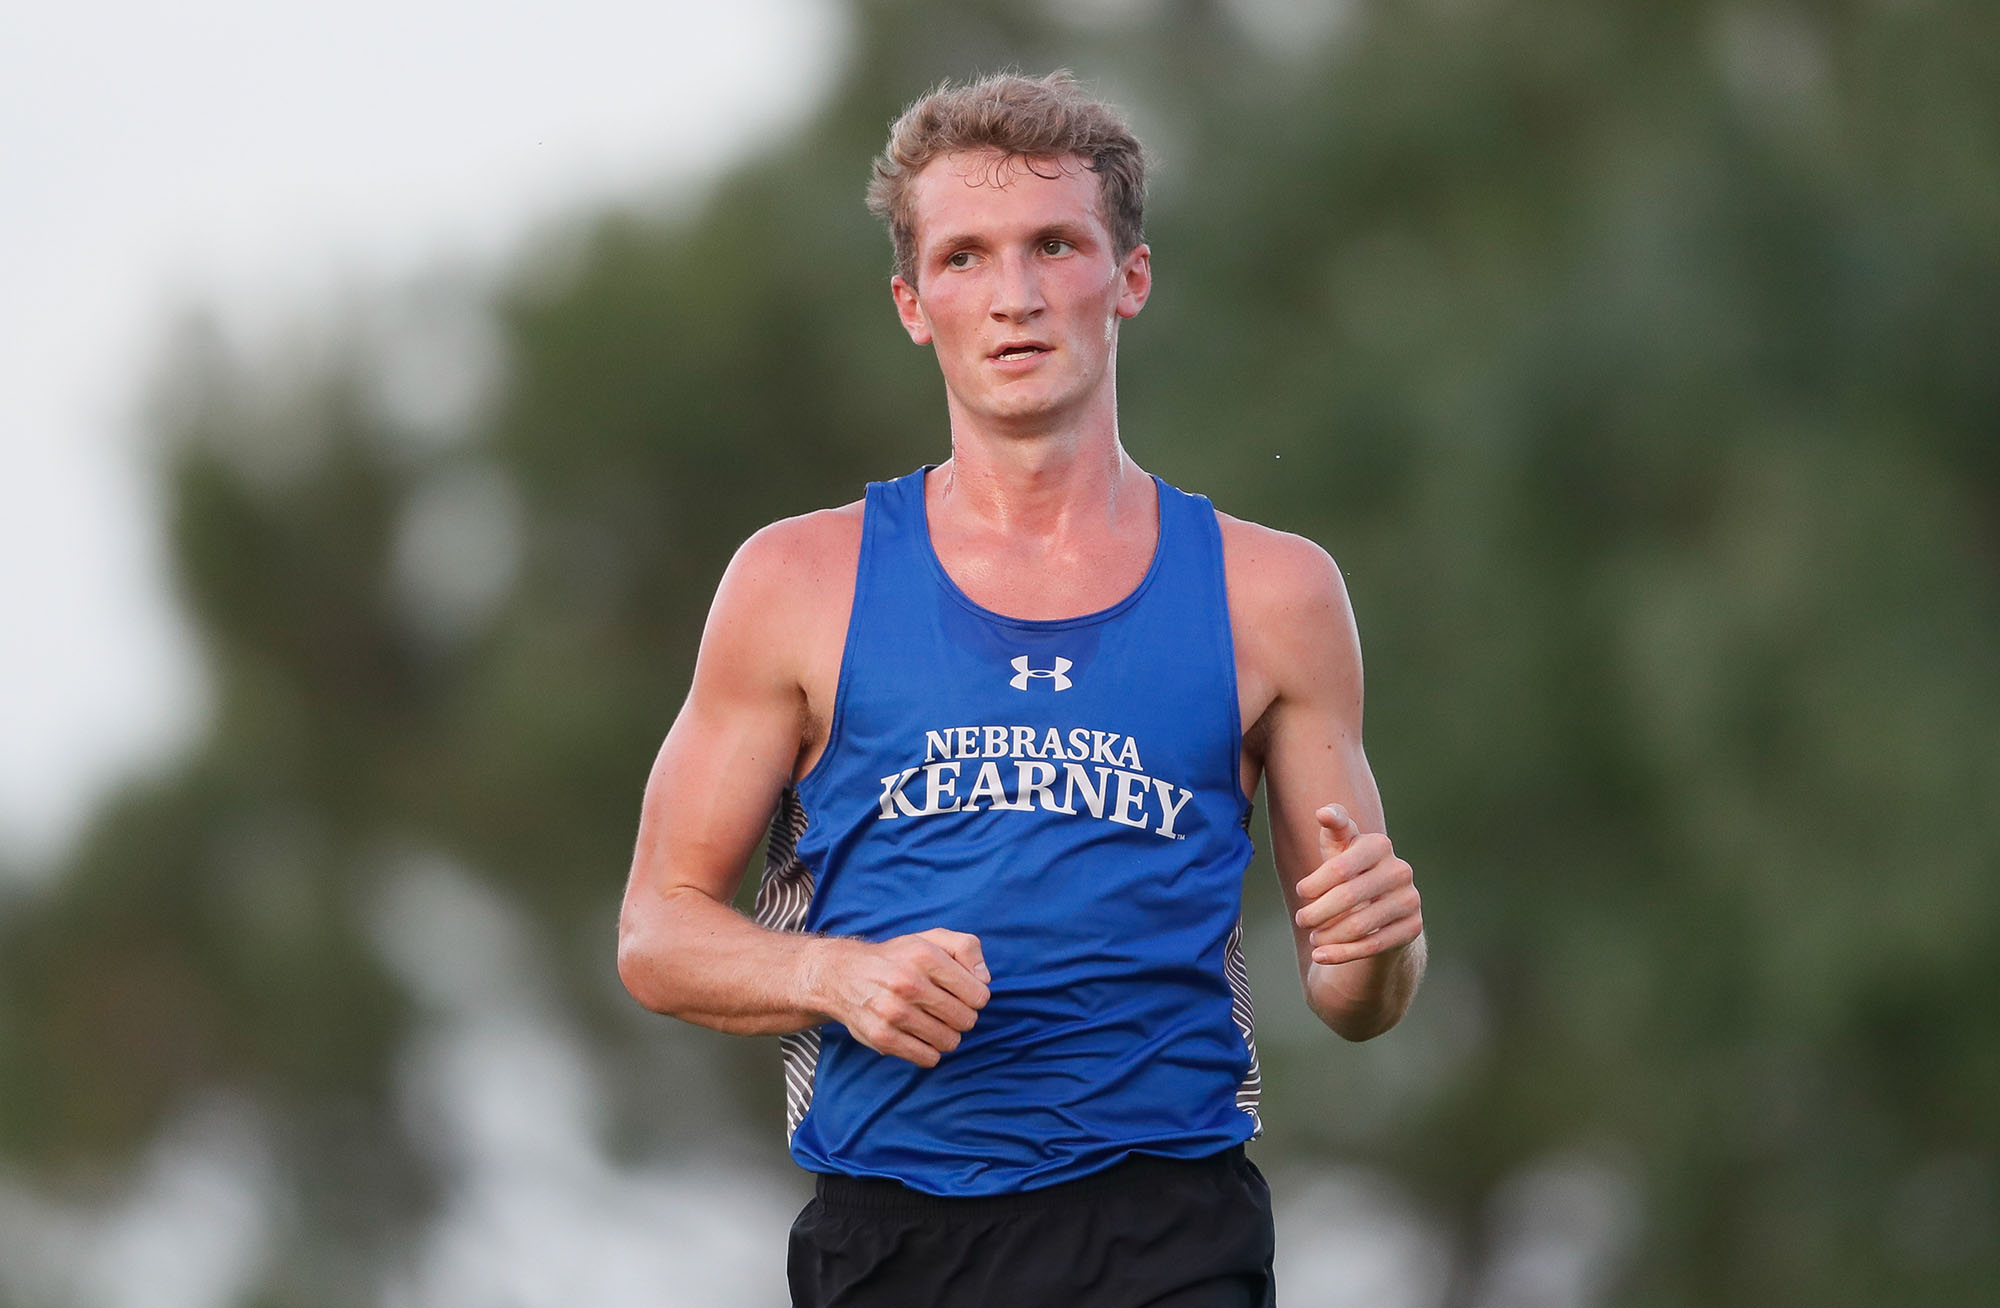 Corbin Hansen, a senior from Deweese, is one of just nine UNK men's cross country runners to earn NCAA Division II All-American honors. He can become a two-time All-American during the Division II Championships scheduled for Nov. 23 in Sacramento, California.